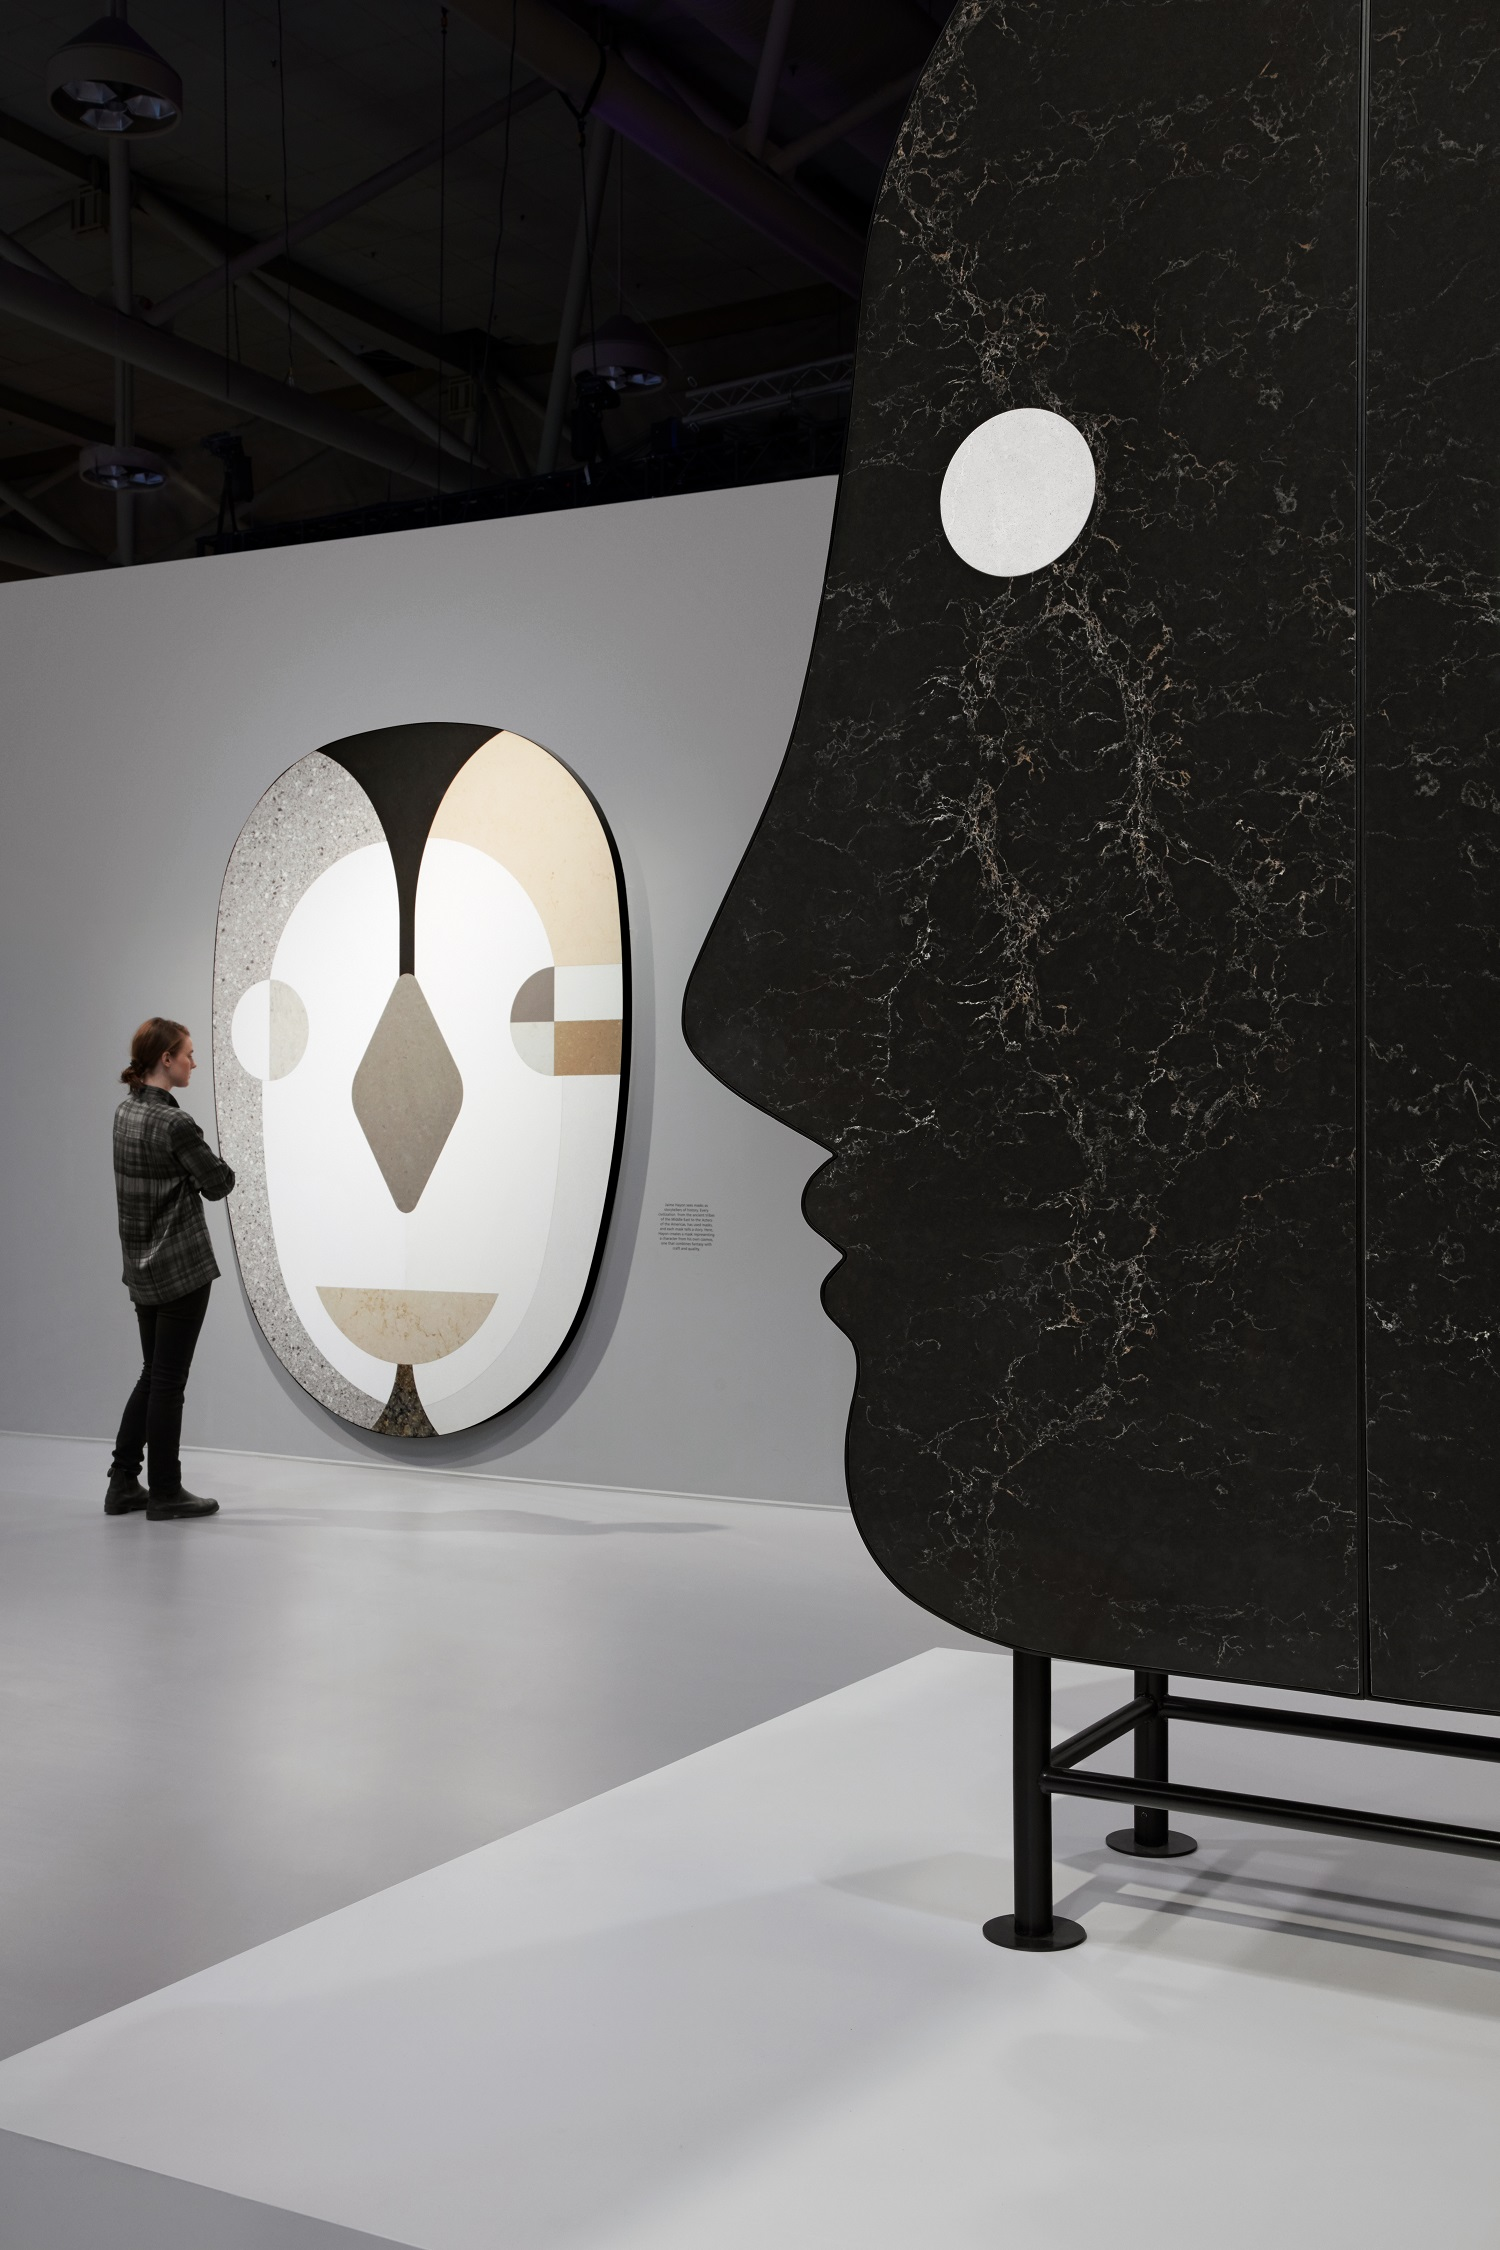 An unusual cabinet design inspired by masks, featuring a variety of Caesarstone quartz surfaces.